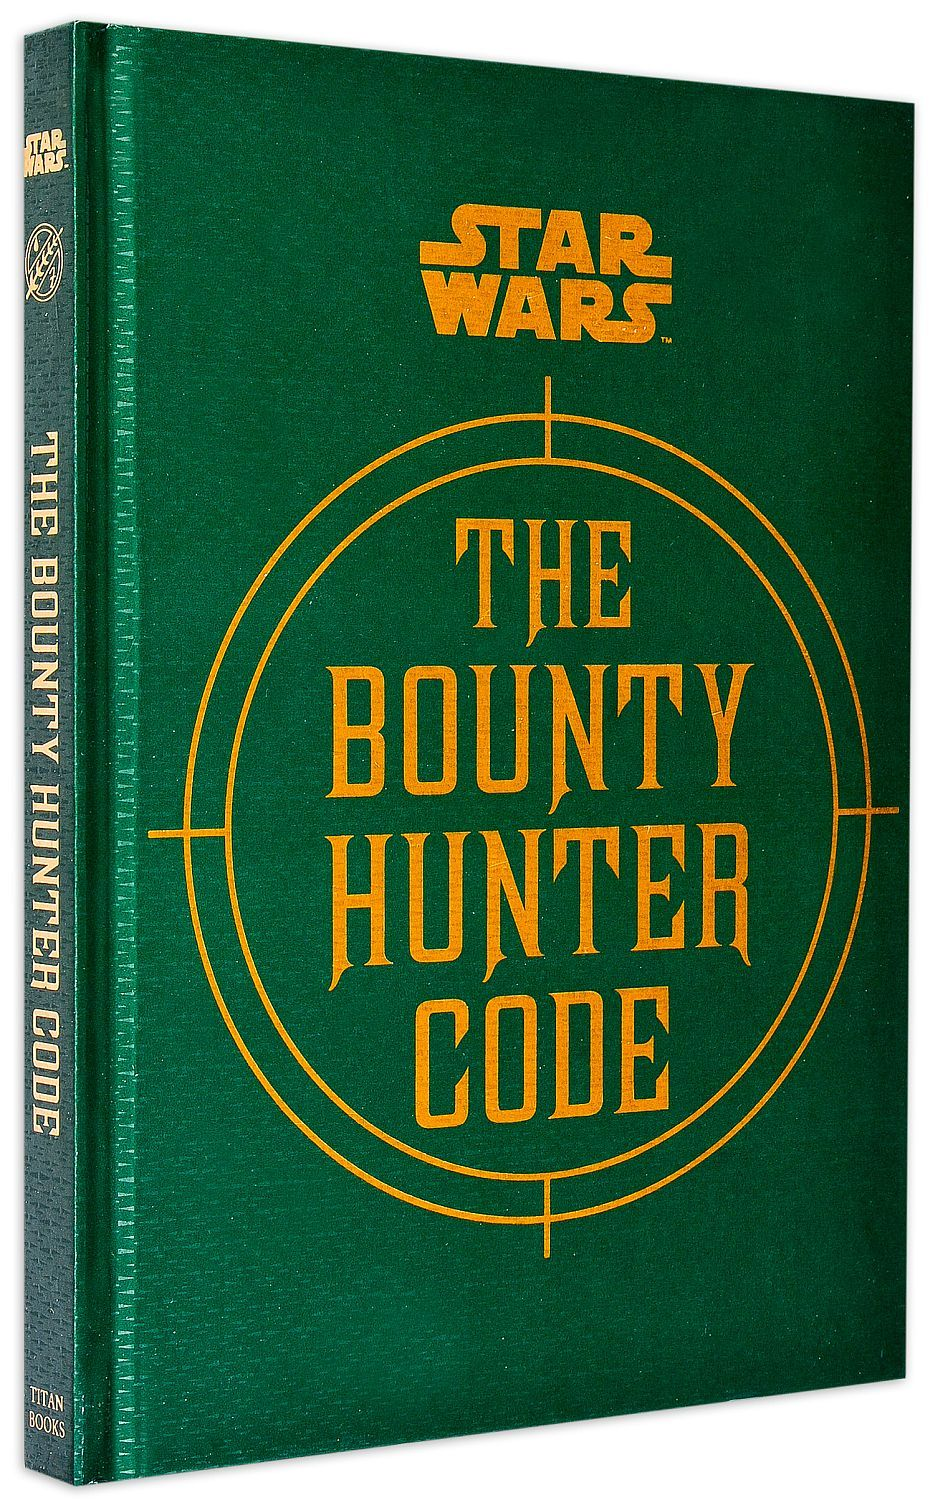 Star Wars. The Bounty Hunter Code (From the Files of Boba Fett) - 1